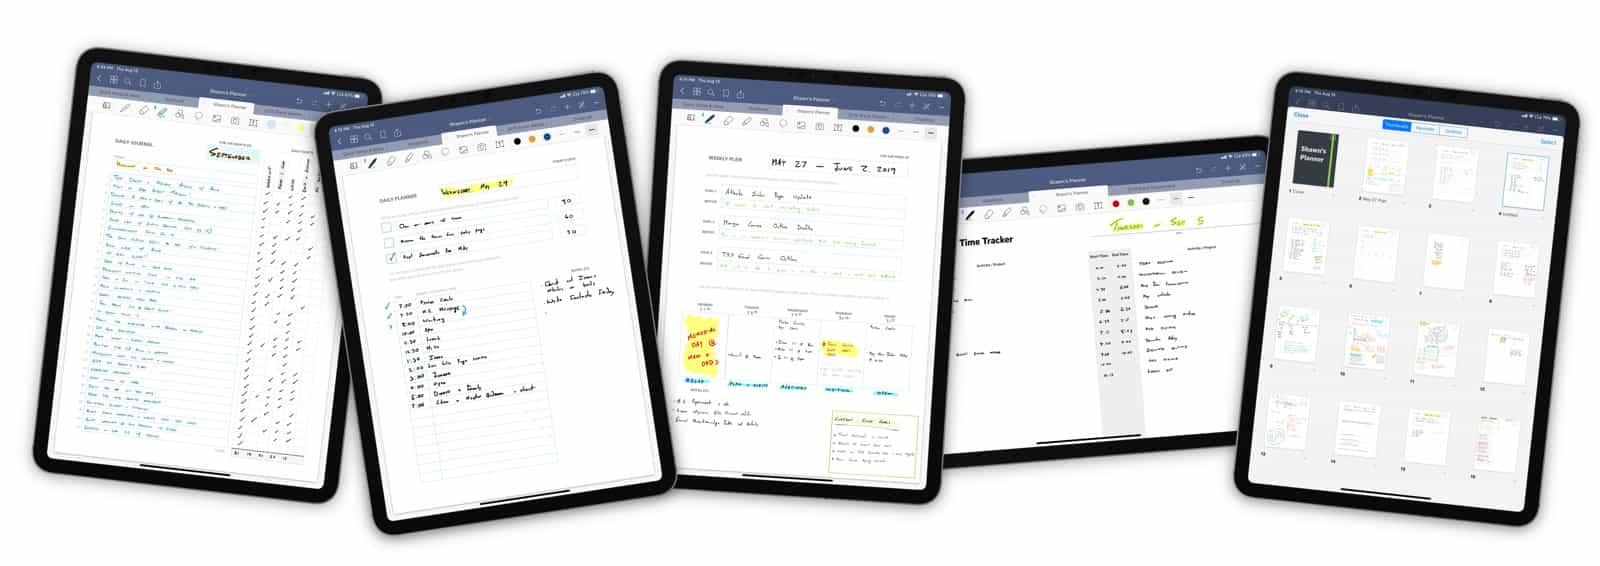 GoodNotes Custom Templates work on iPad Pro